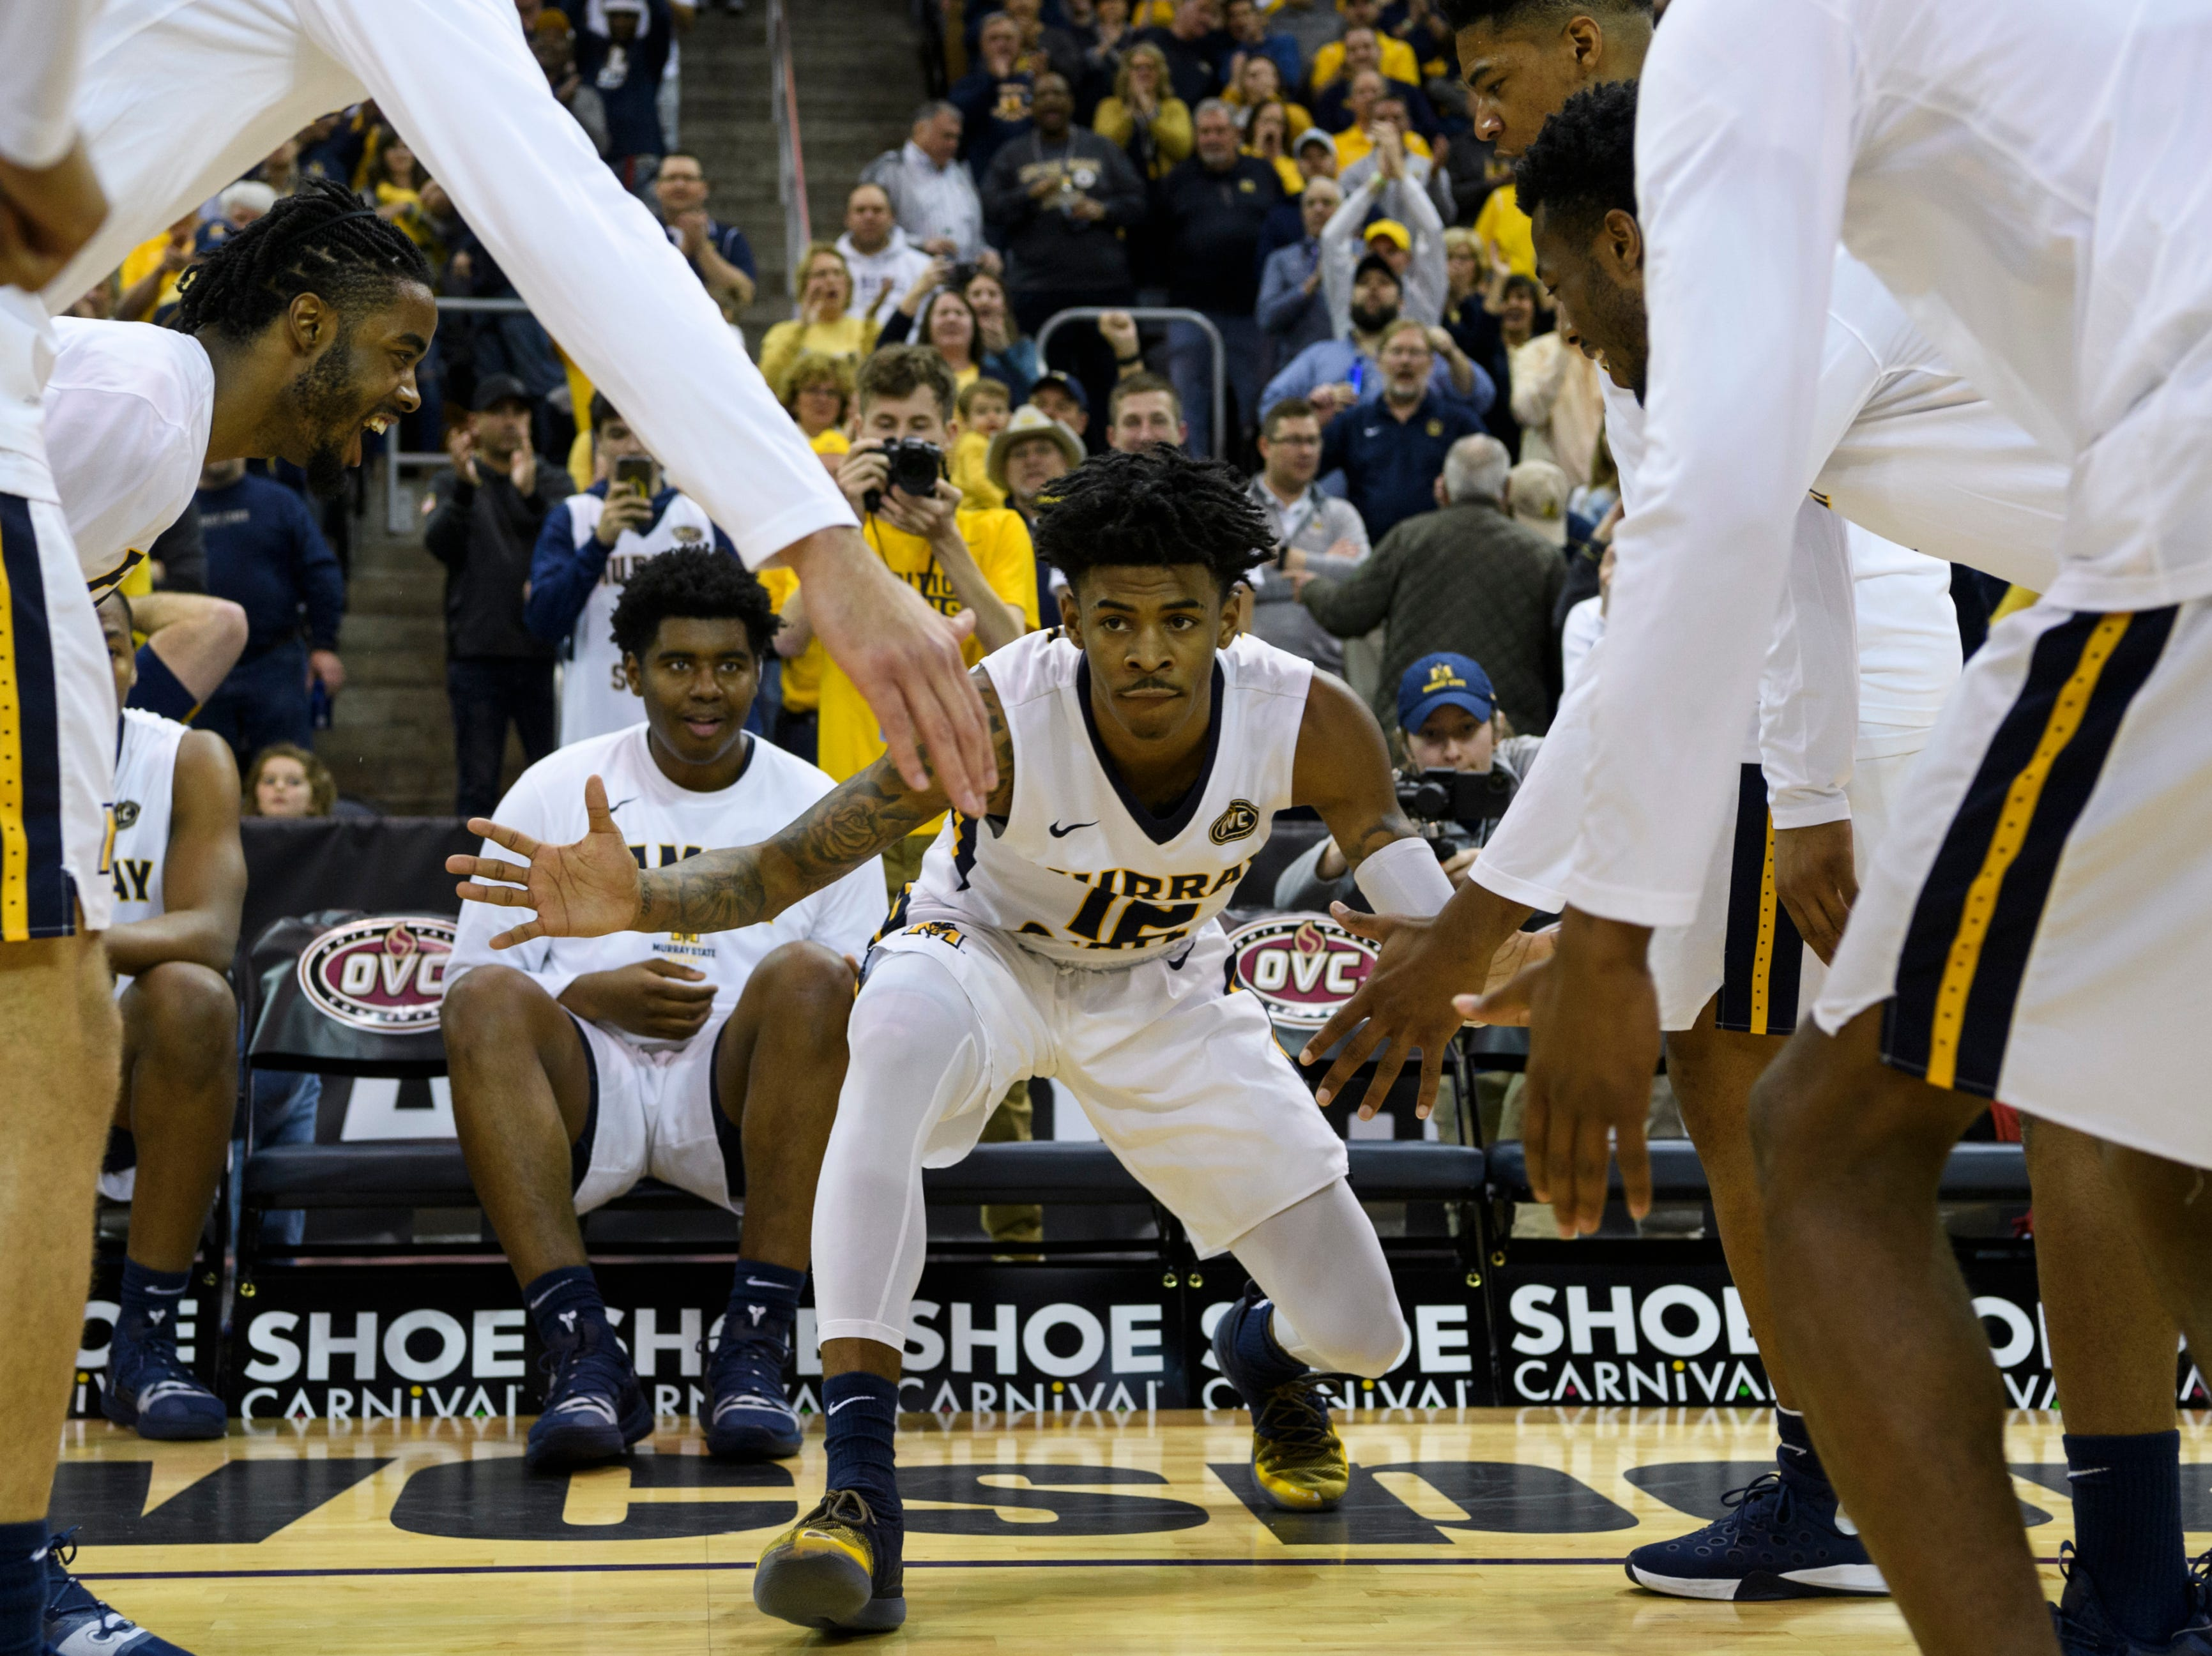 Murray State's Ja Morant (12) is introduced as a starter before the start of the Ohio Valley Conference tournament semifinals against the Jacksonville State University Gamecocks at Ford Center in Evansville, Ind., Friday, March 8, 2019. The Racers defeated the Gamecocks 76-74 to advance to the OVC Championship against the Belmont Bruins.